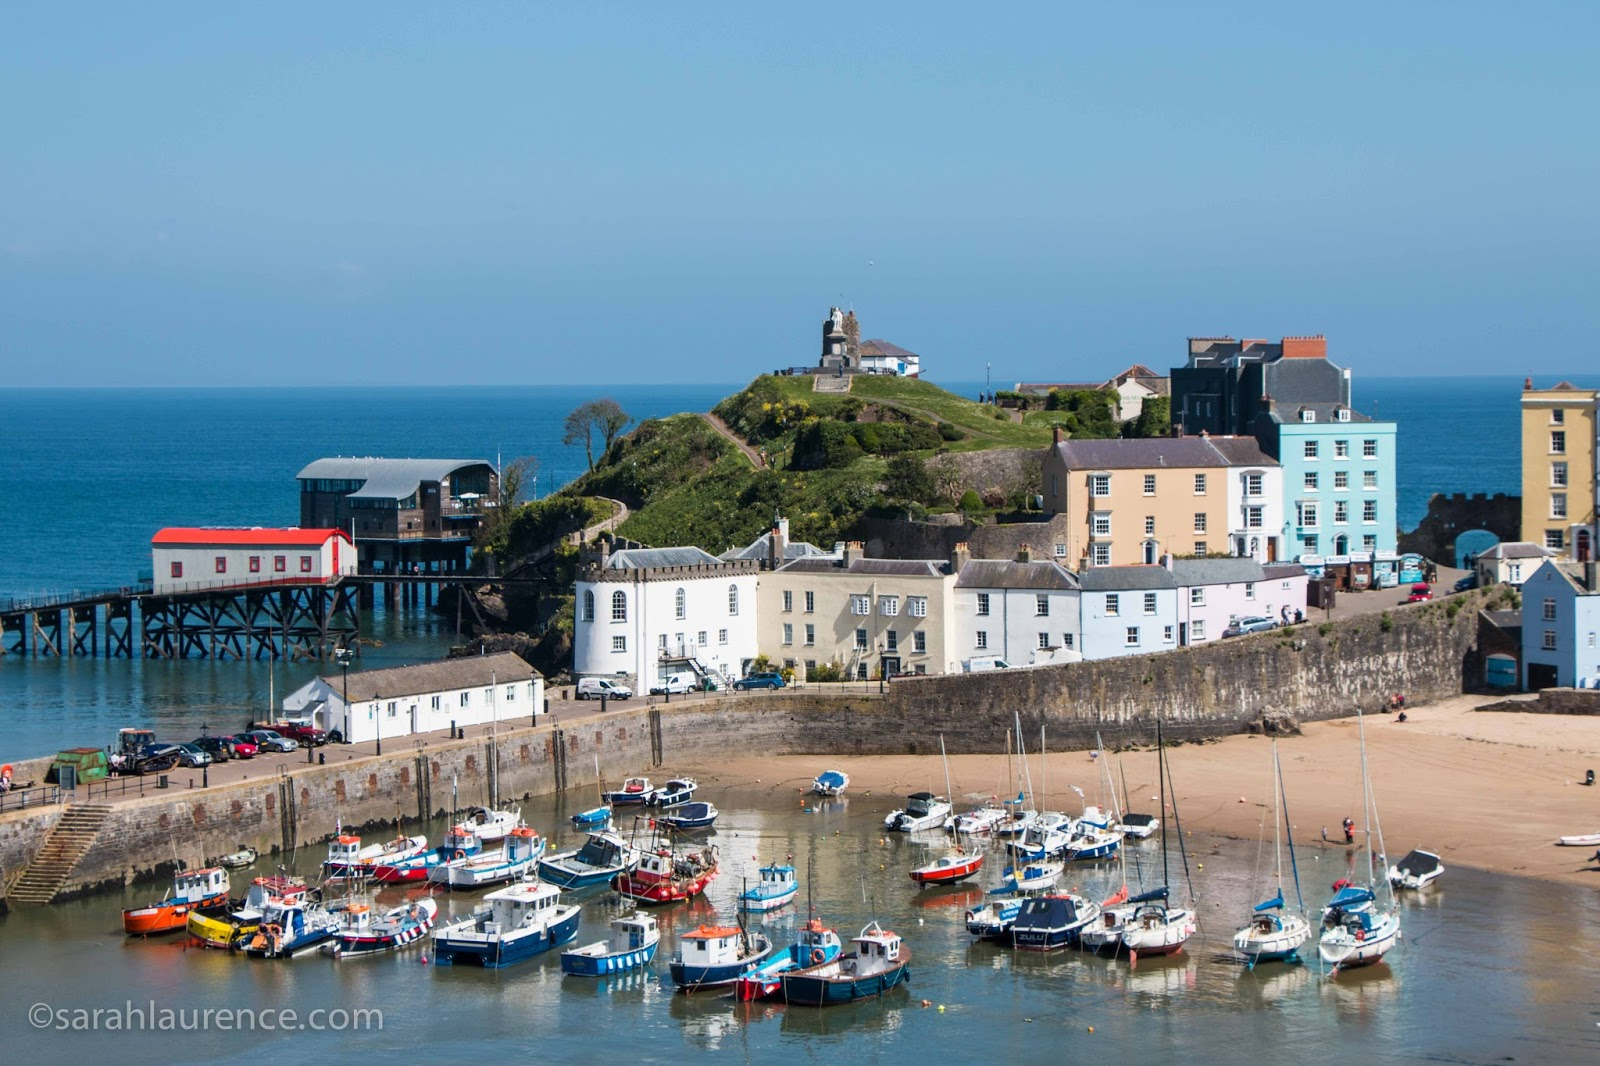 Town Trails of Tenby South Wales, Sarah Laurence: Carew Castle & Coastal Cliffs in Pembrokeshire, Wales